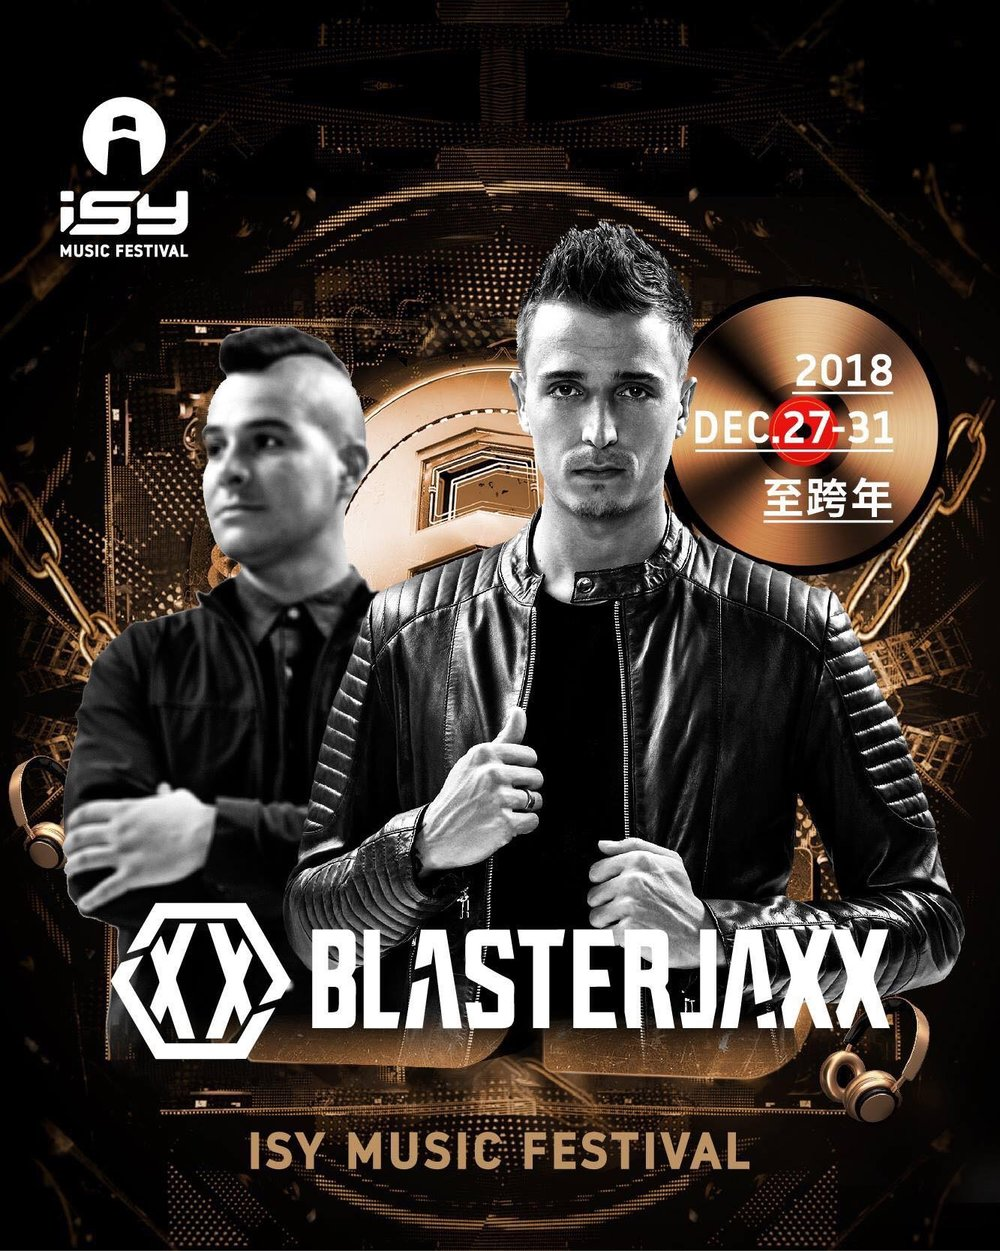 BlasterJaxx - is a Dutch DJ and record producer duo composed of Thom Jongkind (born 1990) and Idir Makhlaf (born 1992). They mainly produce big room house and electro house music.